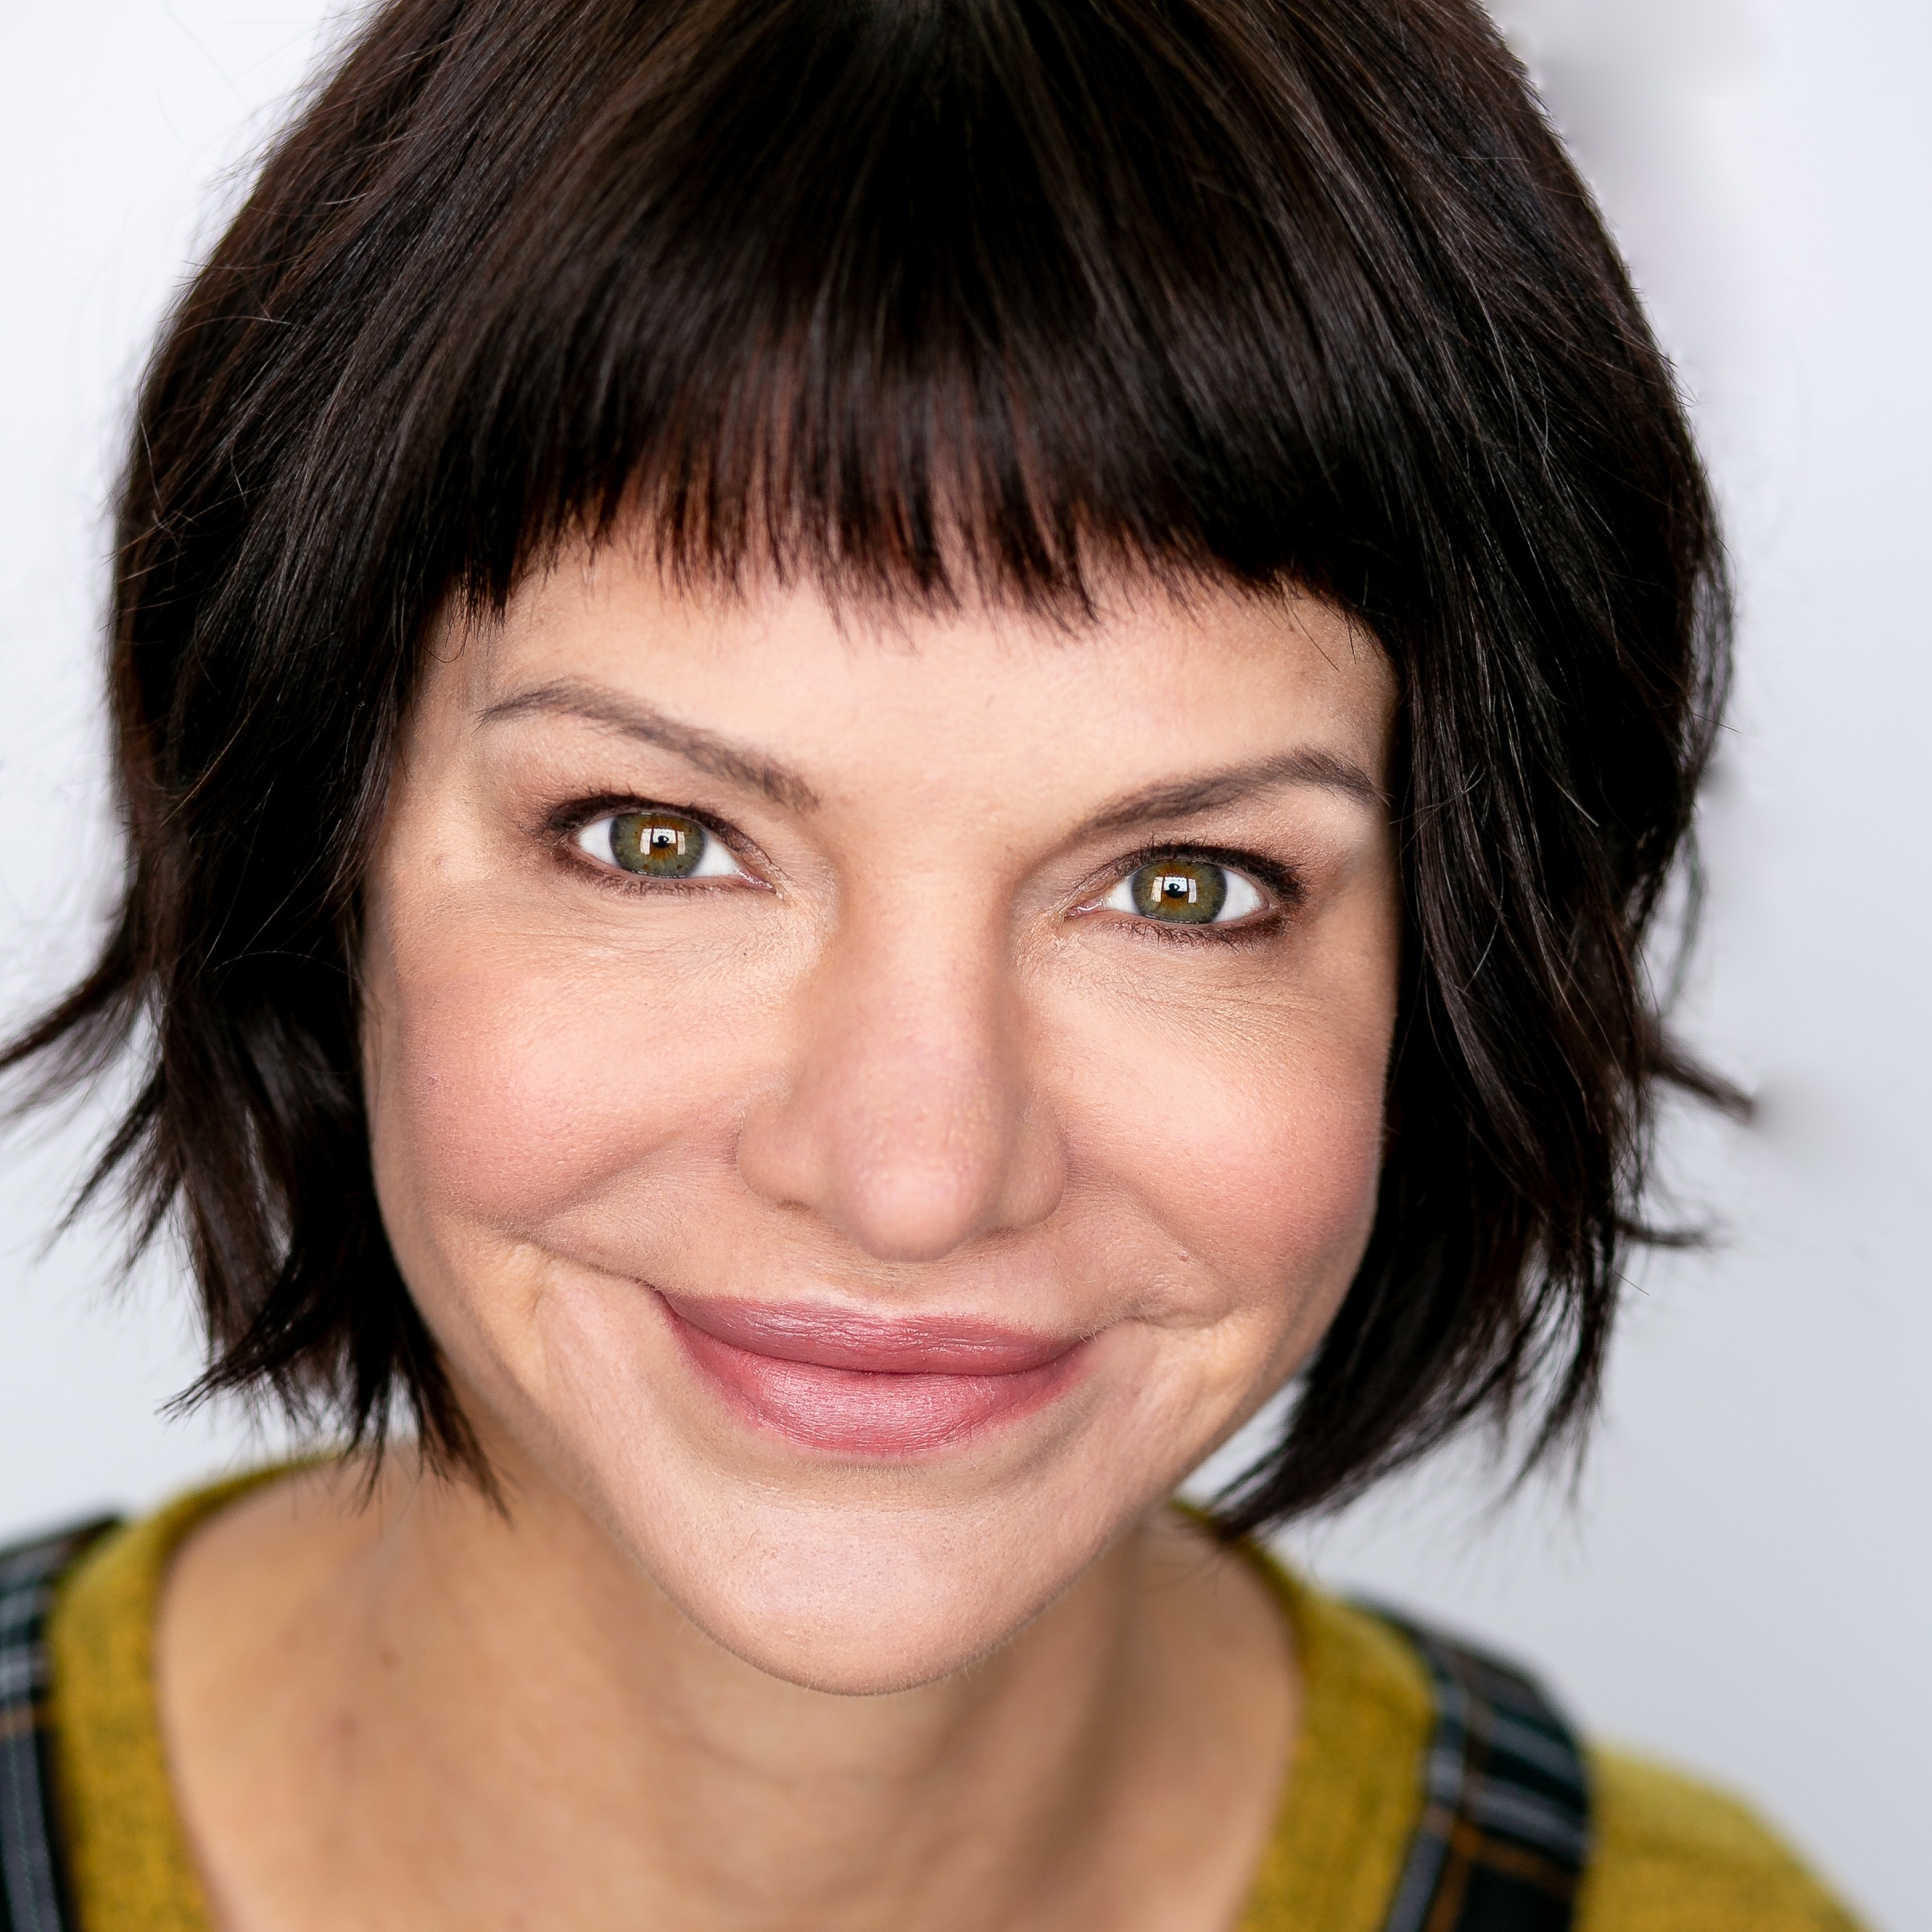 "Susan Louise O'Connor has appeared on Broadway & in the National Tour of  Blithe Spirit  w/Angela Lansbury, receiving a Theatre World Award, the Dorothy Loudon Fellowship & an Outer Circle Critics Nomination. Her guest star credits include: ""Law & Order: SVU & CI"", ""Orange is the New Black"", ""Hotel du Loone"" & Shapchat's ""SOLVE"". Other TV & film credits include: Snaggletooth, Doomsdays, Flying Scissors, Playtime's Over & Wallflowers. Susan has appeared in NYC and regional theaters across the country in productions of  Never Swim Alone ,  Heisenberg ,  God of Carnage  and  Sylvia.  She wrote and stars in the short film Standdown that is currently making the film festival rounds. For more information, check out her website  www.susanlouiseoconnor.com"